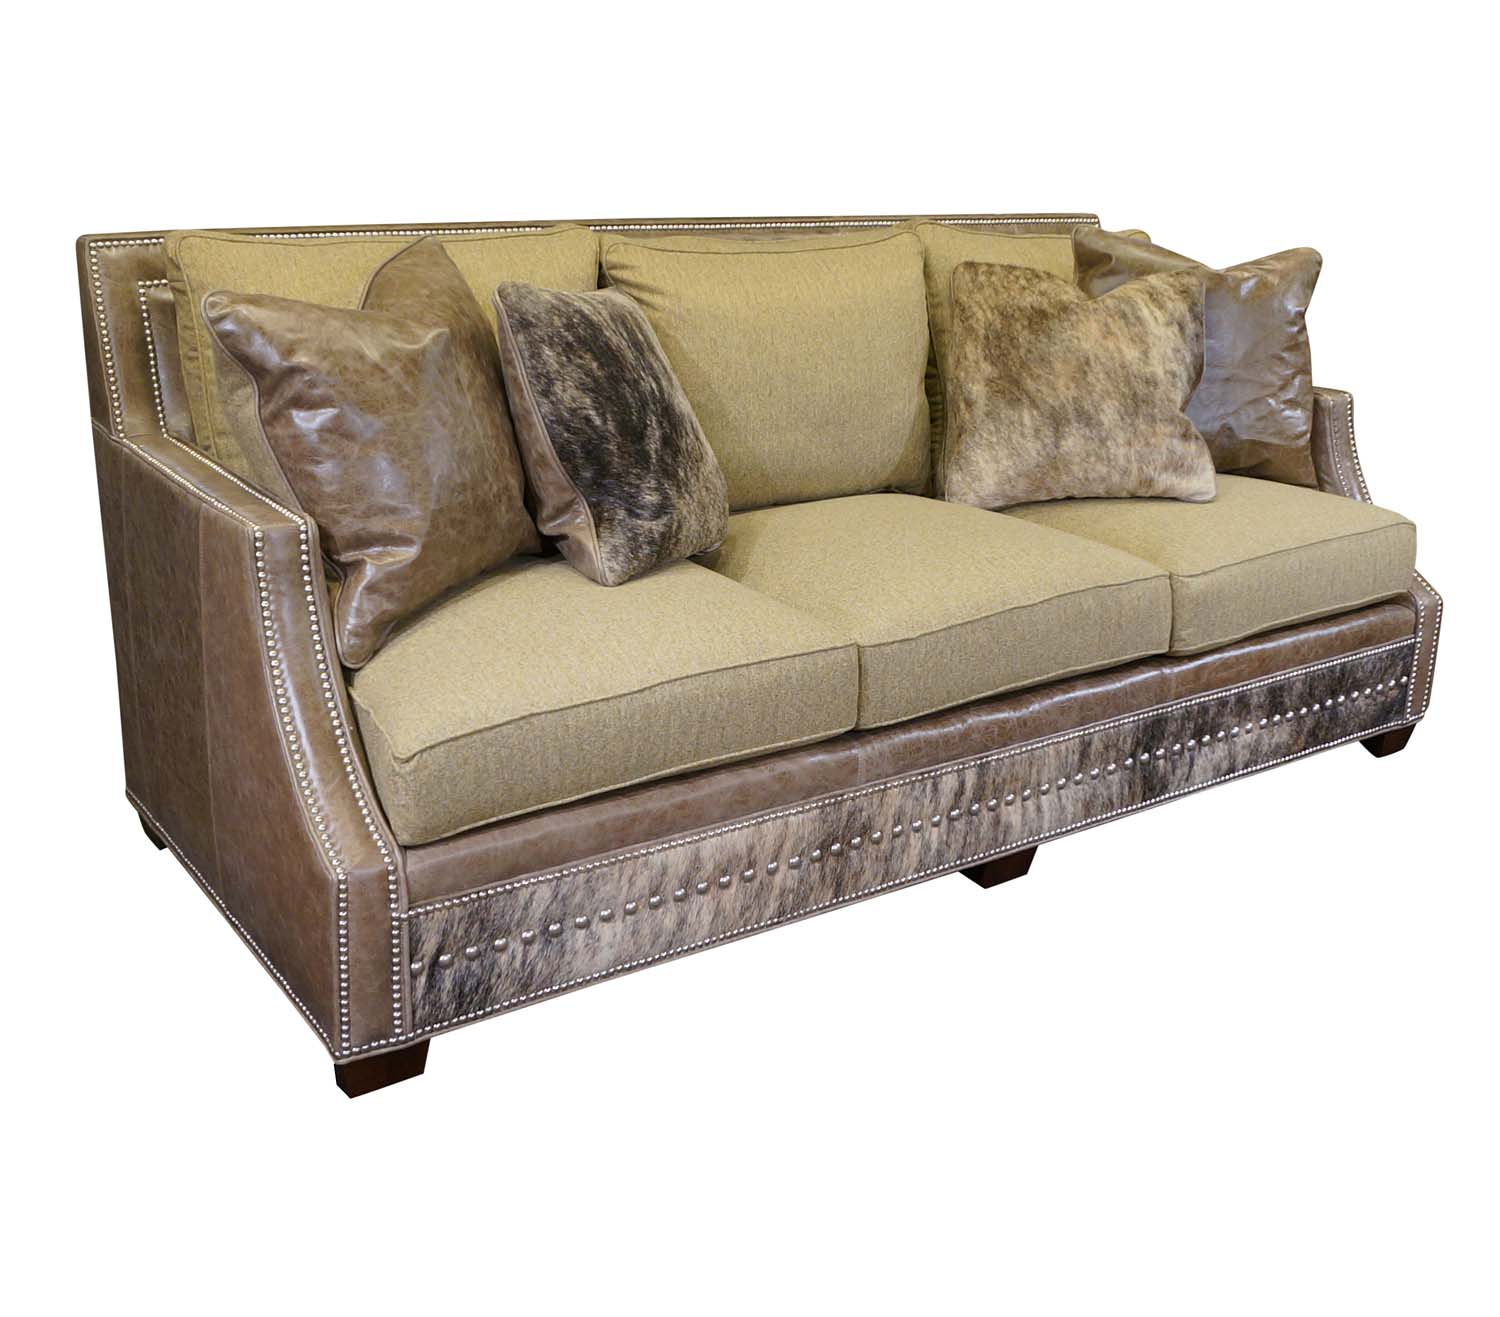 Aberdeen Sofa Western Sofas And Loveseats Free Shipping